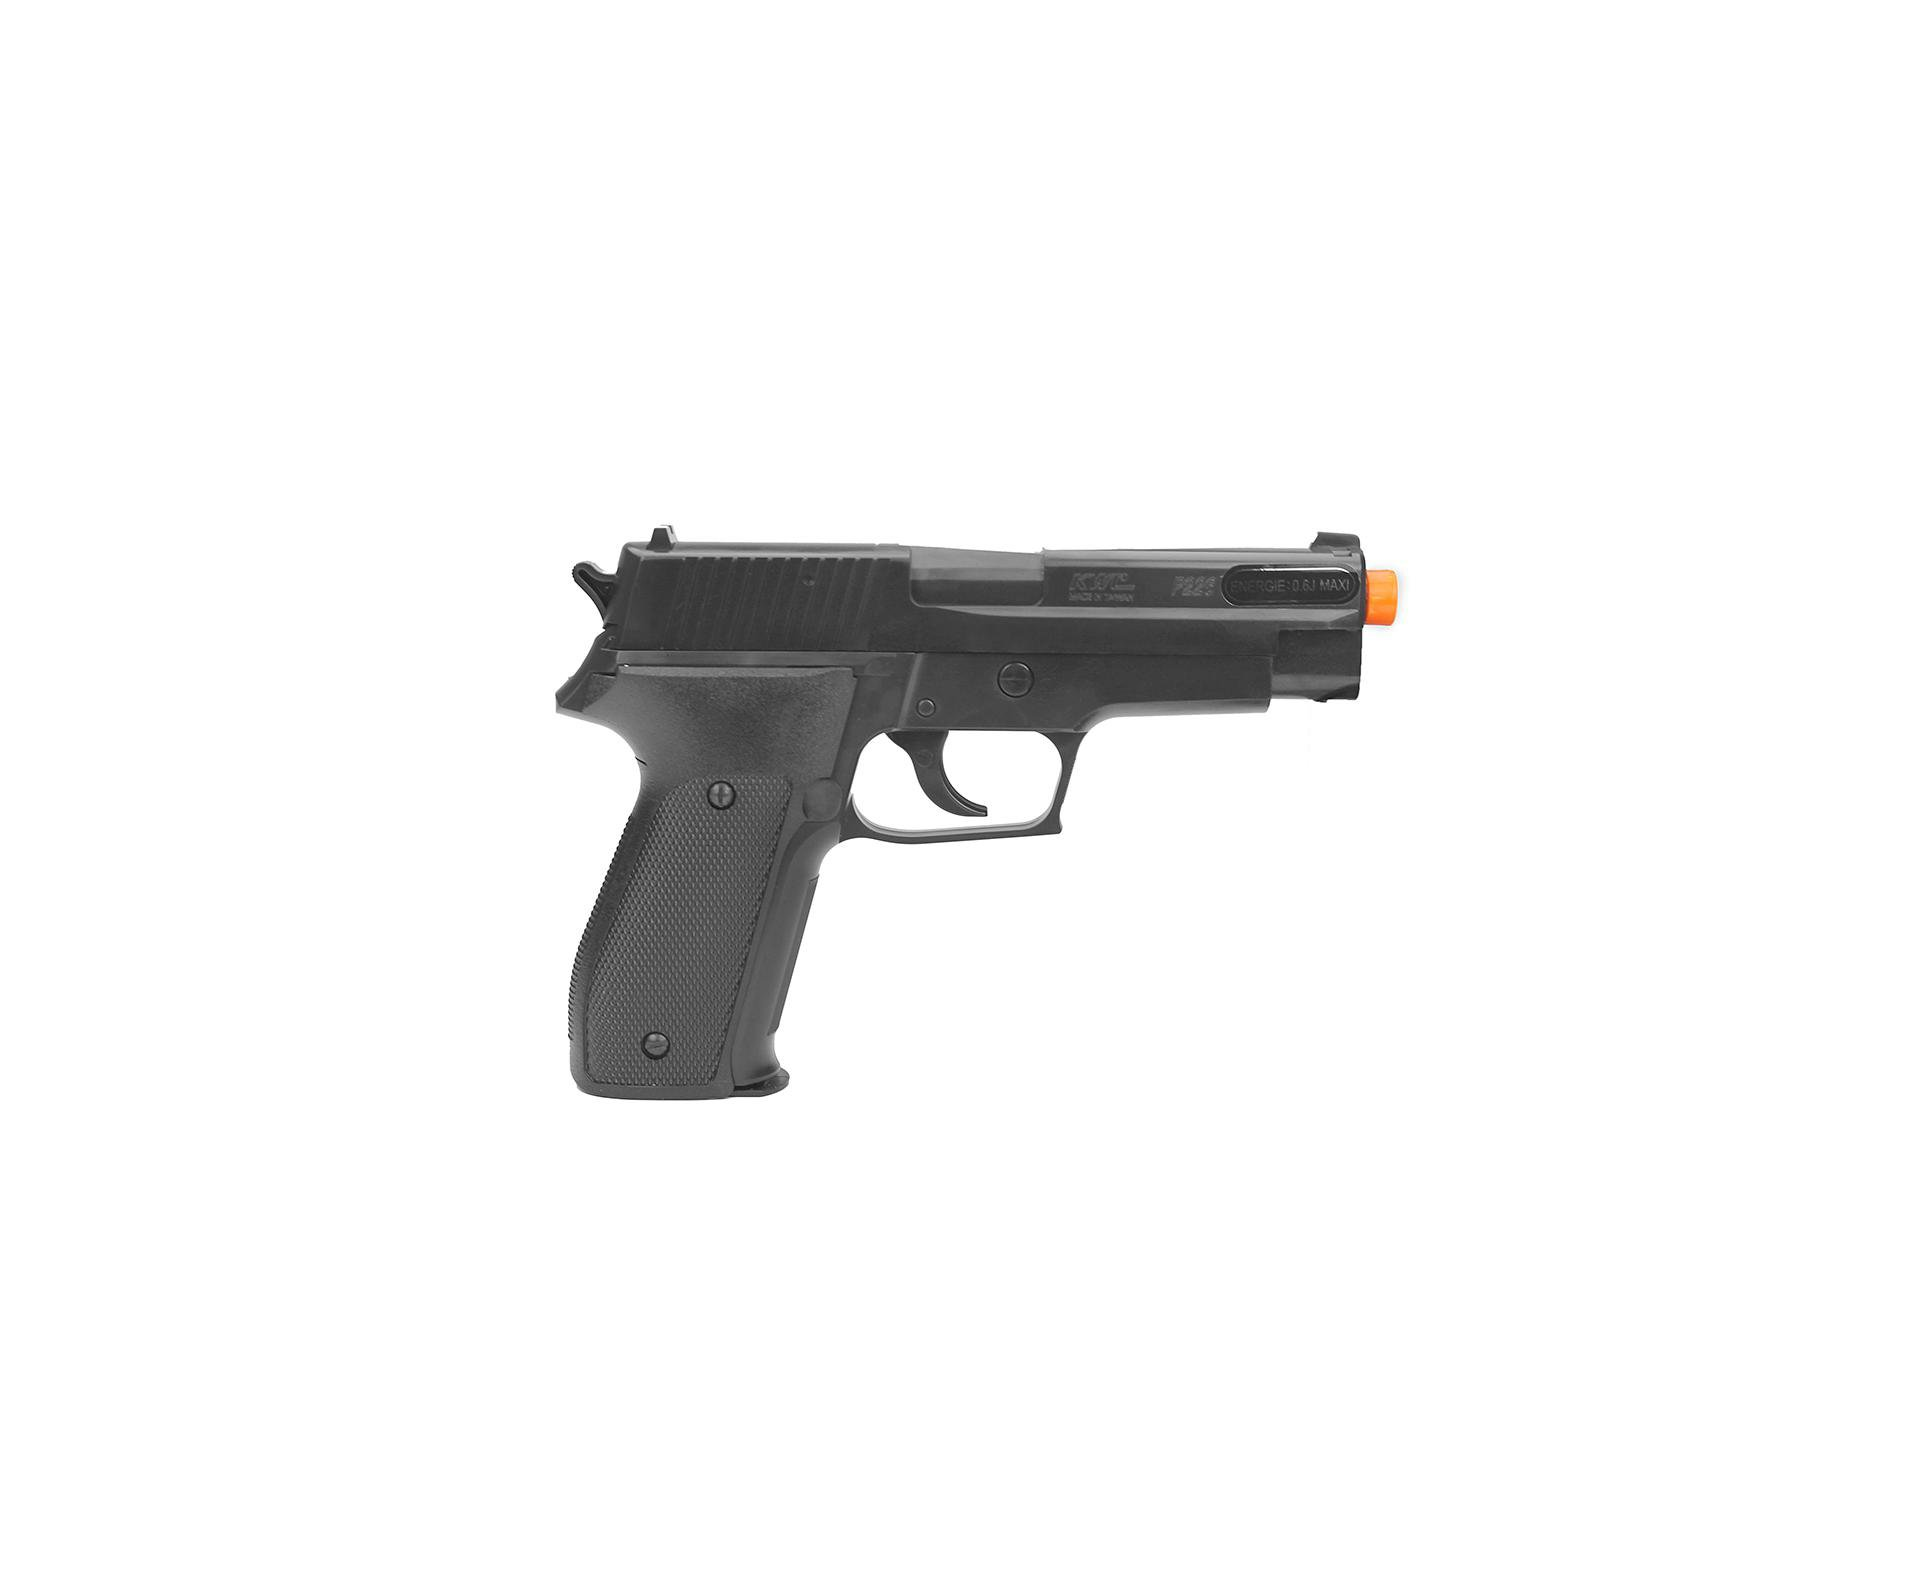 Pistola De Airsoft P226 Abs - Calibre 6,0 Mm - Sig Sauer